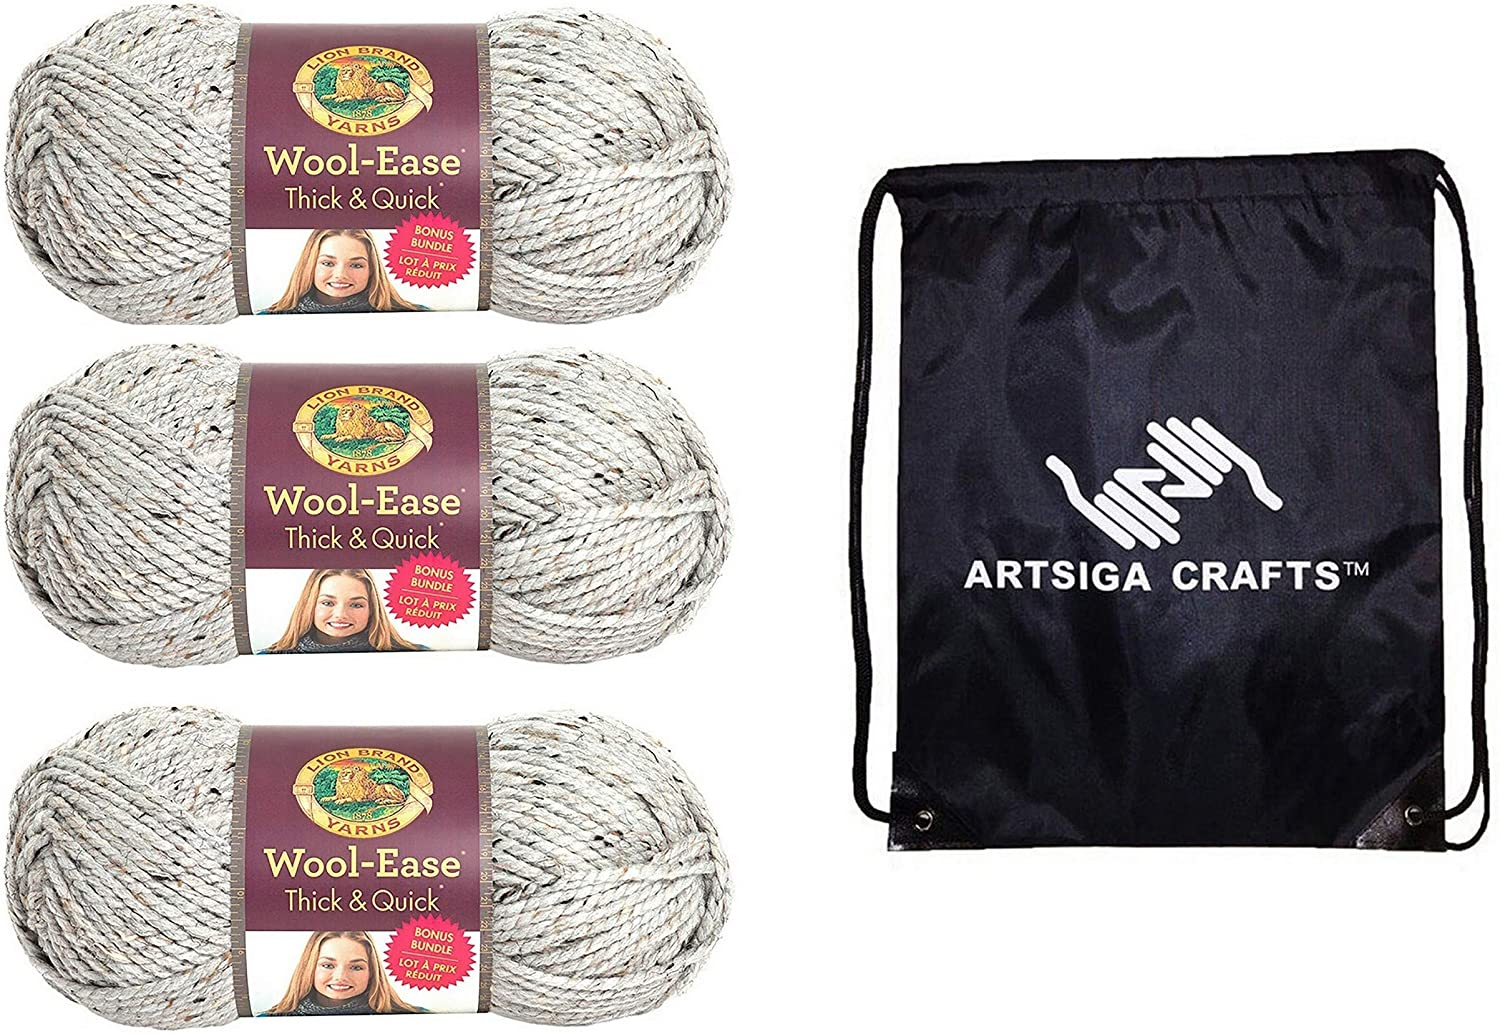 Lion Brand Knitting Yarn Wool-Ease Thick and Quick Bonus Bundle Grey Marble 3-Skein Factory Pack (Same Dye Lot) 641-154 Bundle with 1 Artsiga Crafts Project Bag